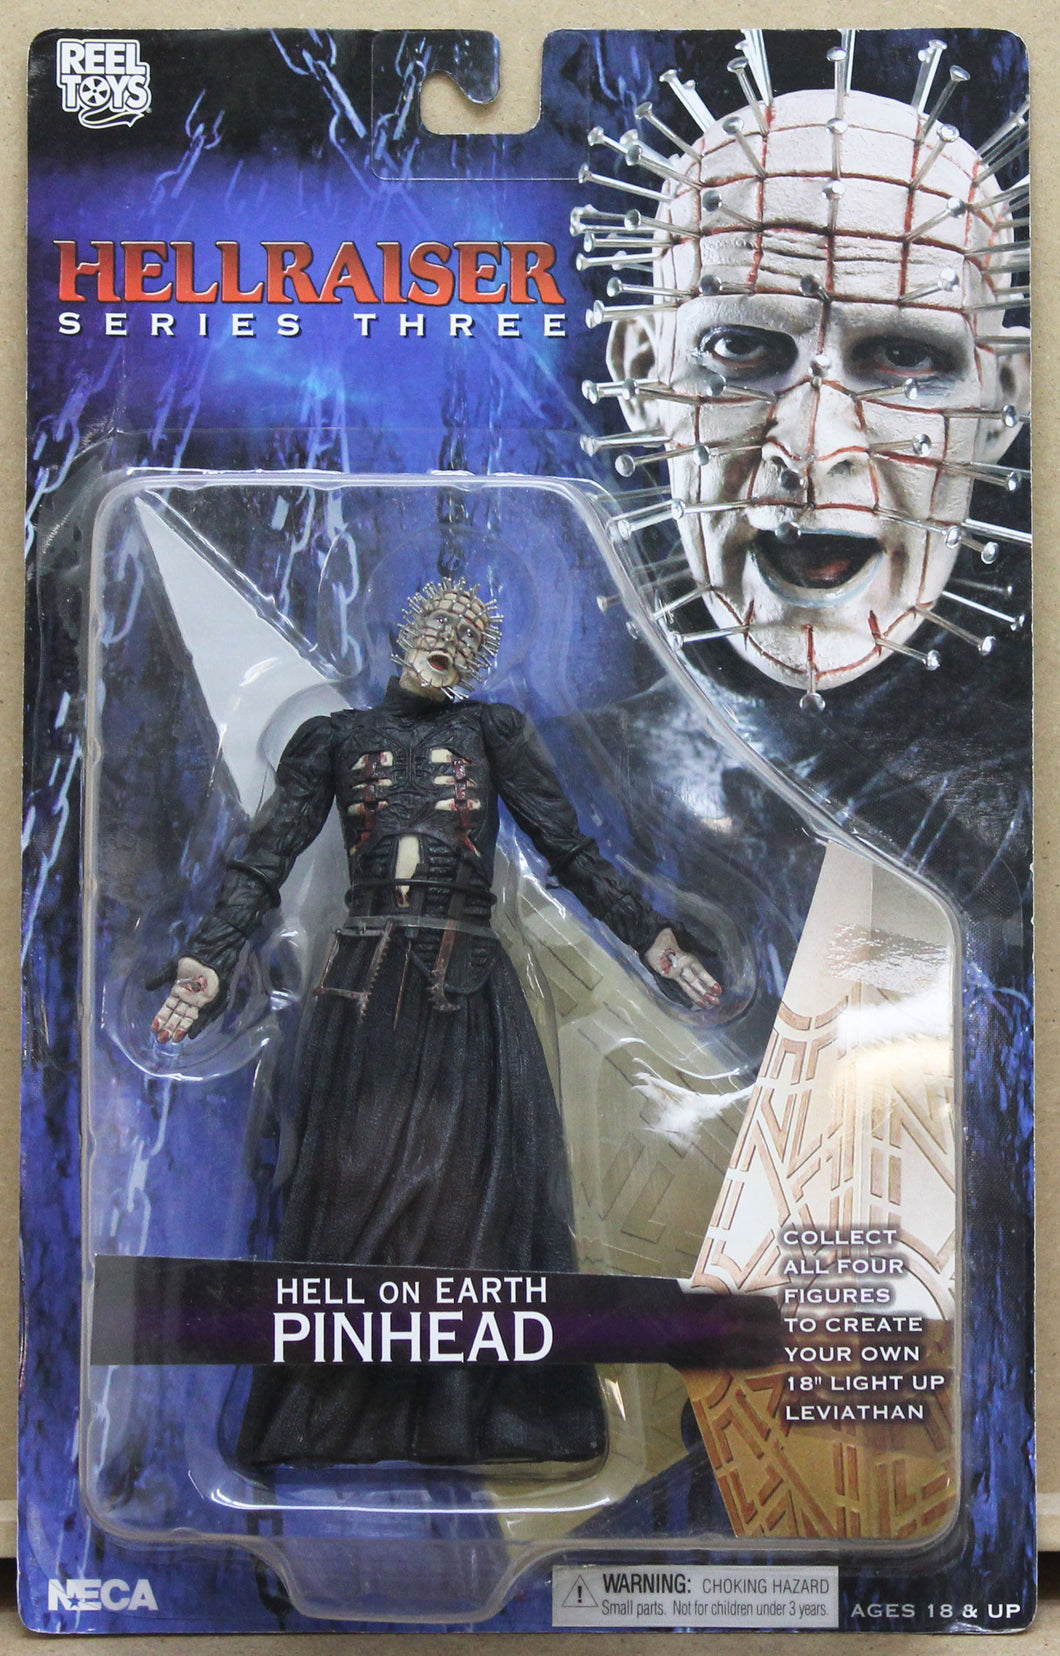 Hellraiser Series Three - Hell on Earth Pinhead